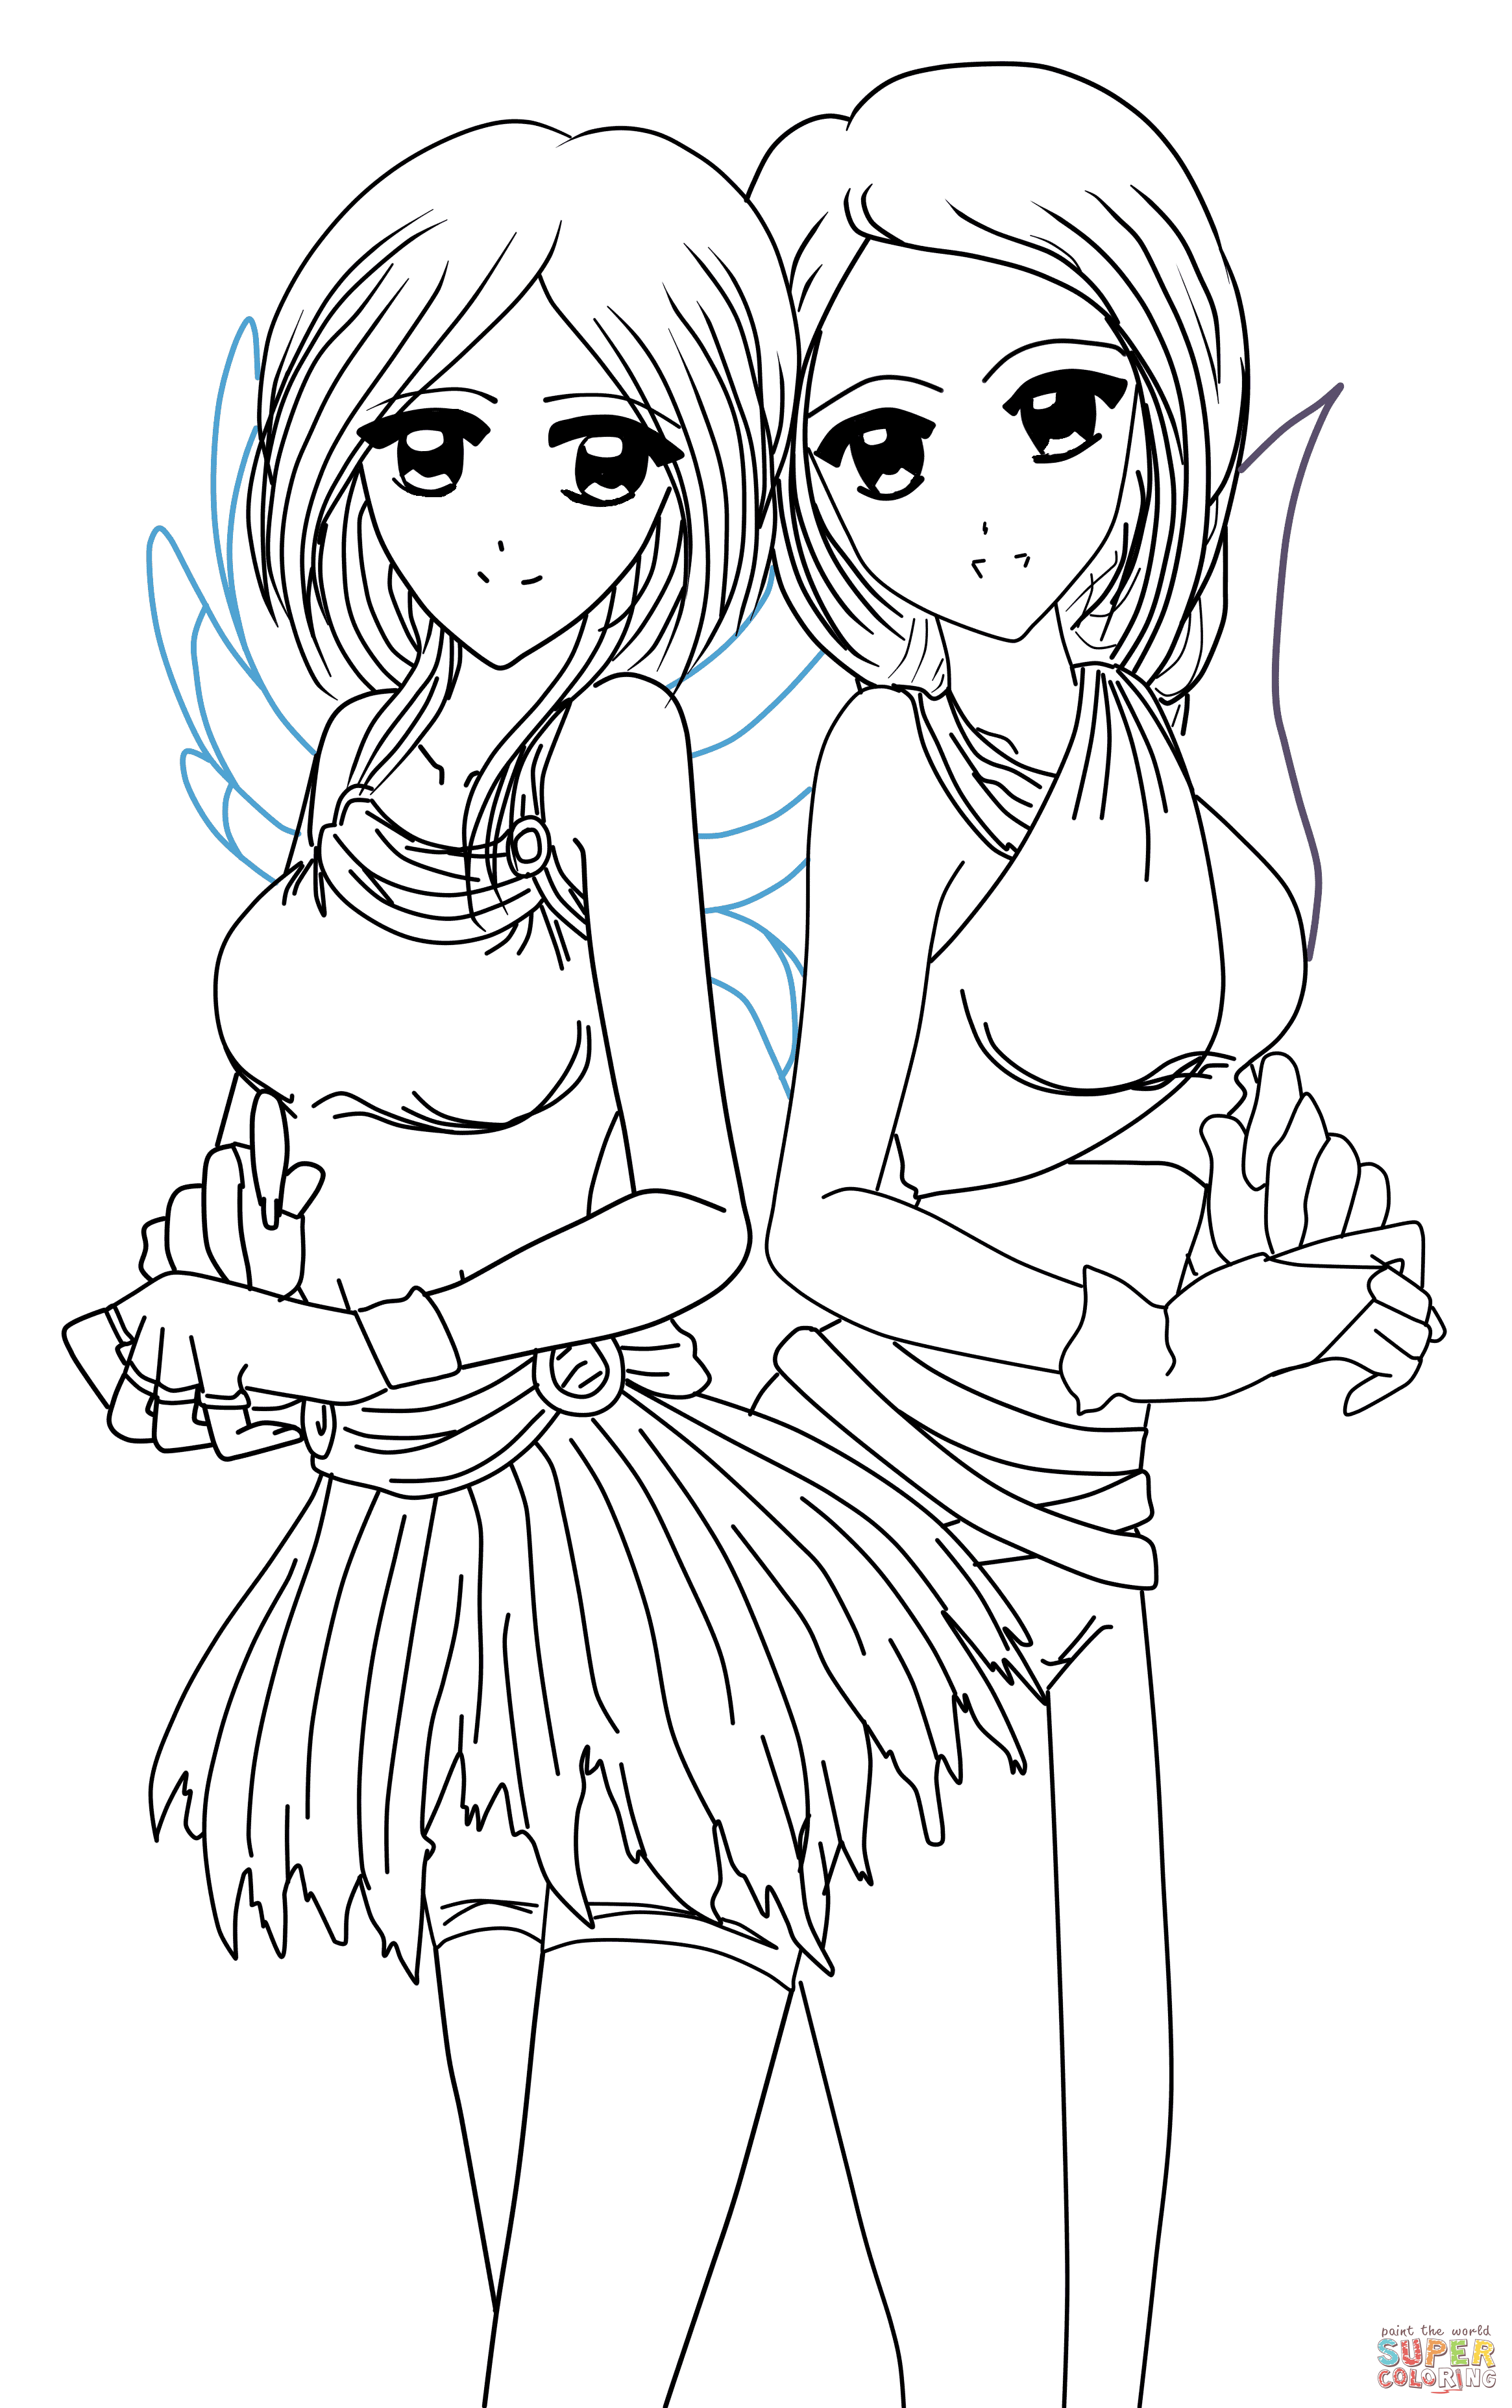 Twins coloring #19, Download drawings